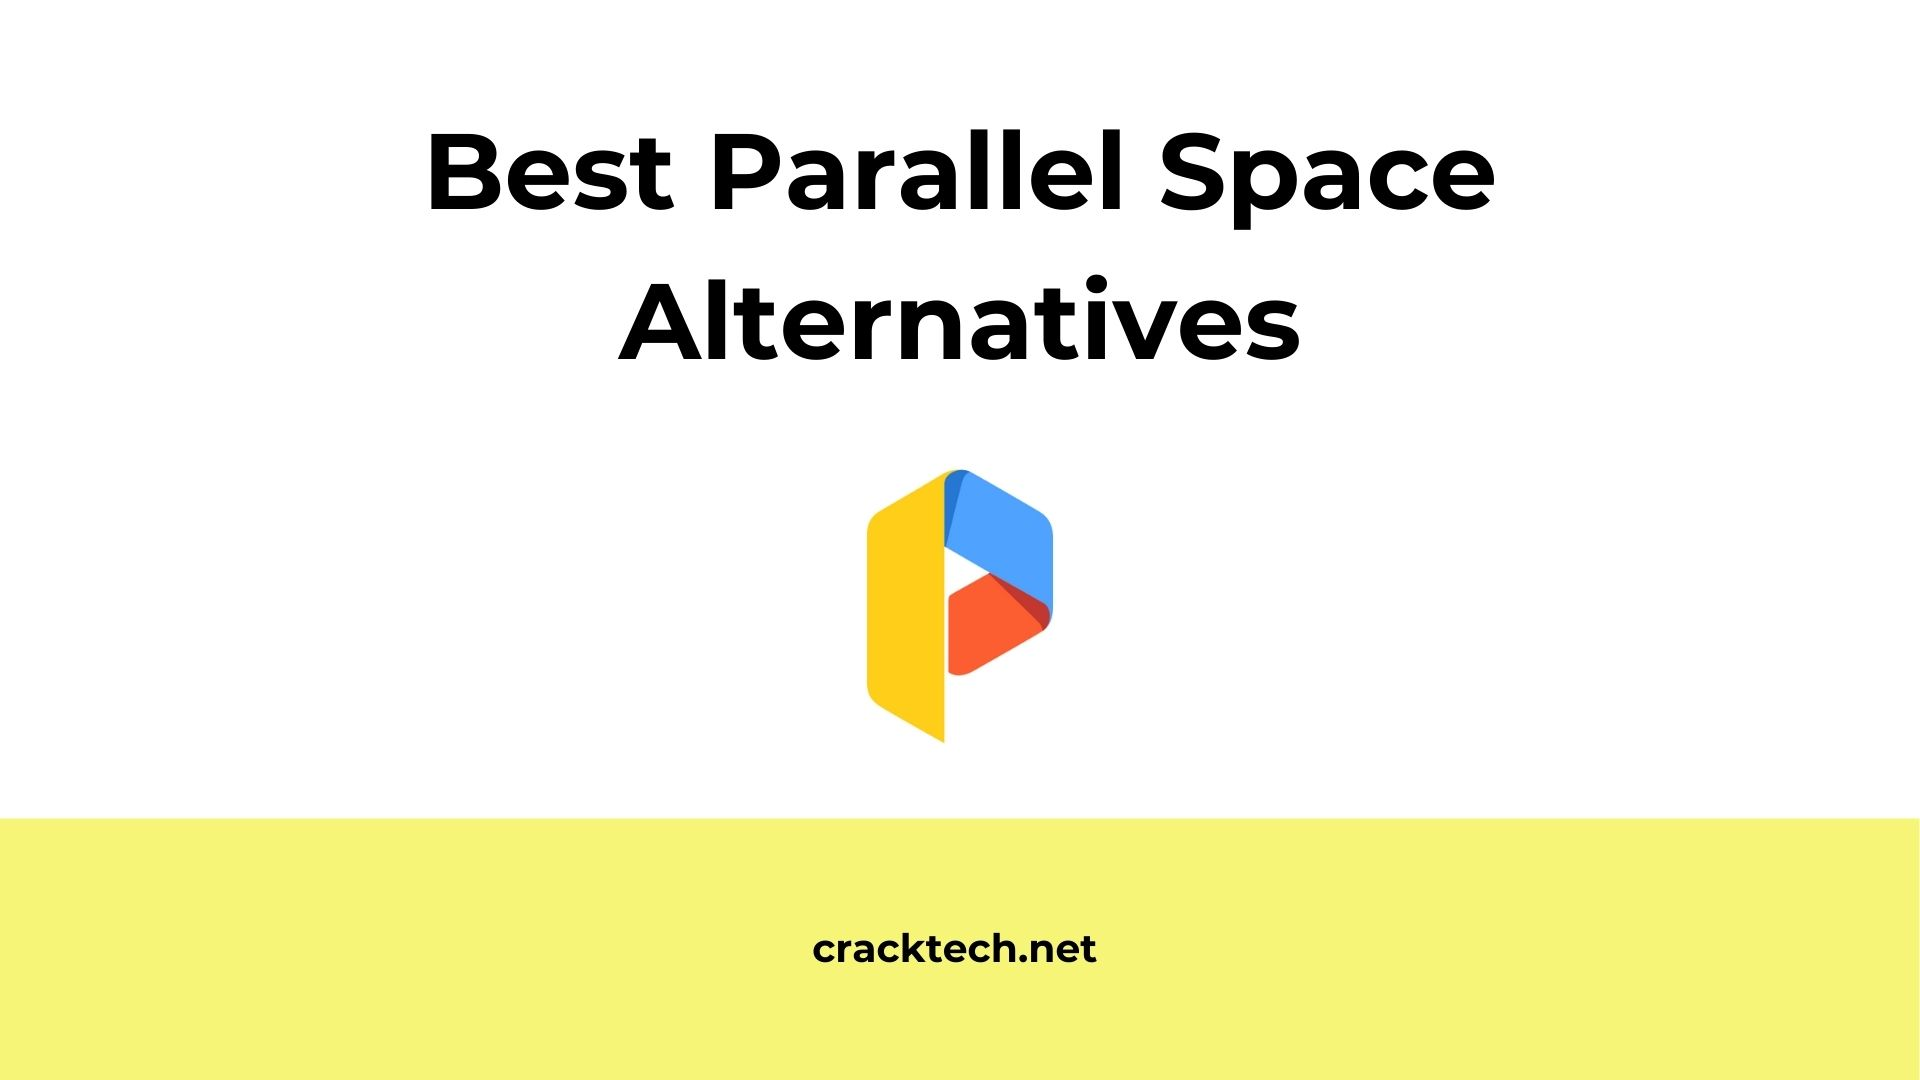 Best Parallel Space Alternatives